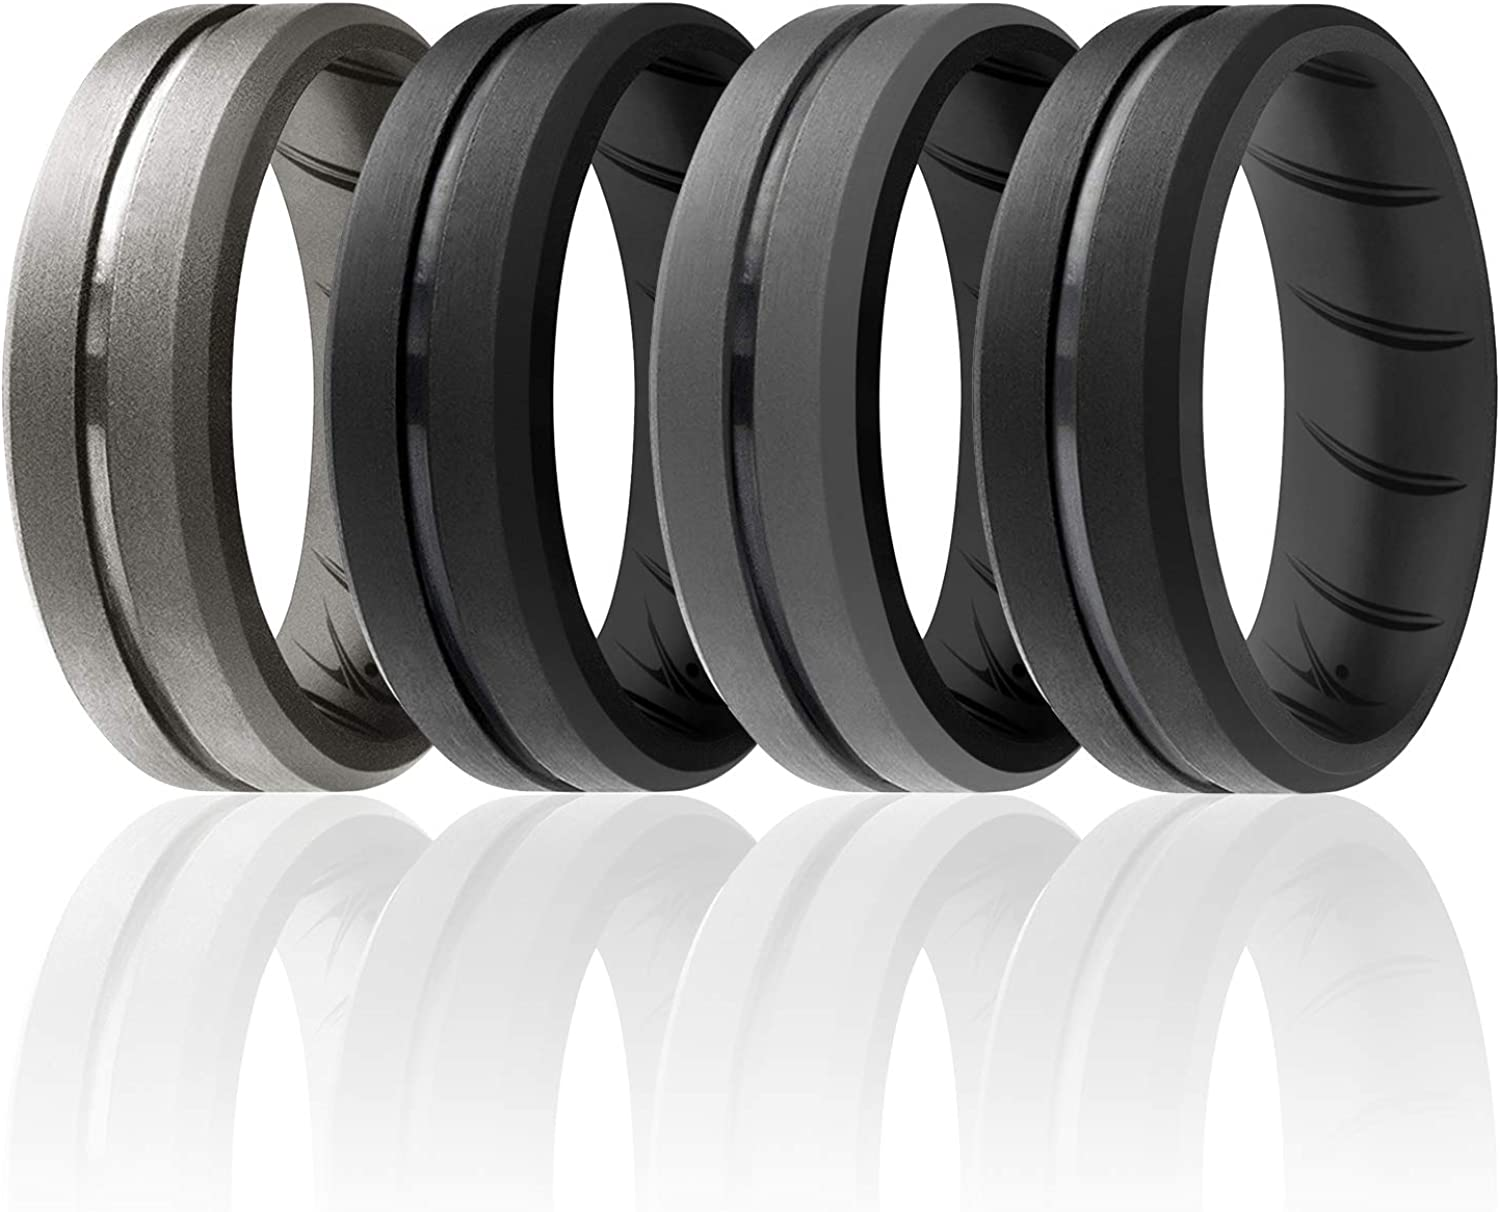 ROQ Silicone Rings for Men 1//2//3//4//6 Multipack of Breathable Mens Silicone Rubber Wedding Rings Bands Duo Collection